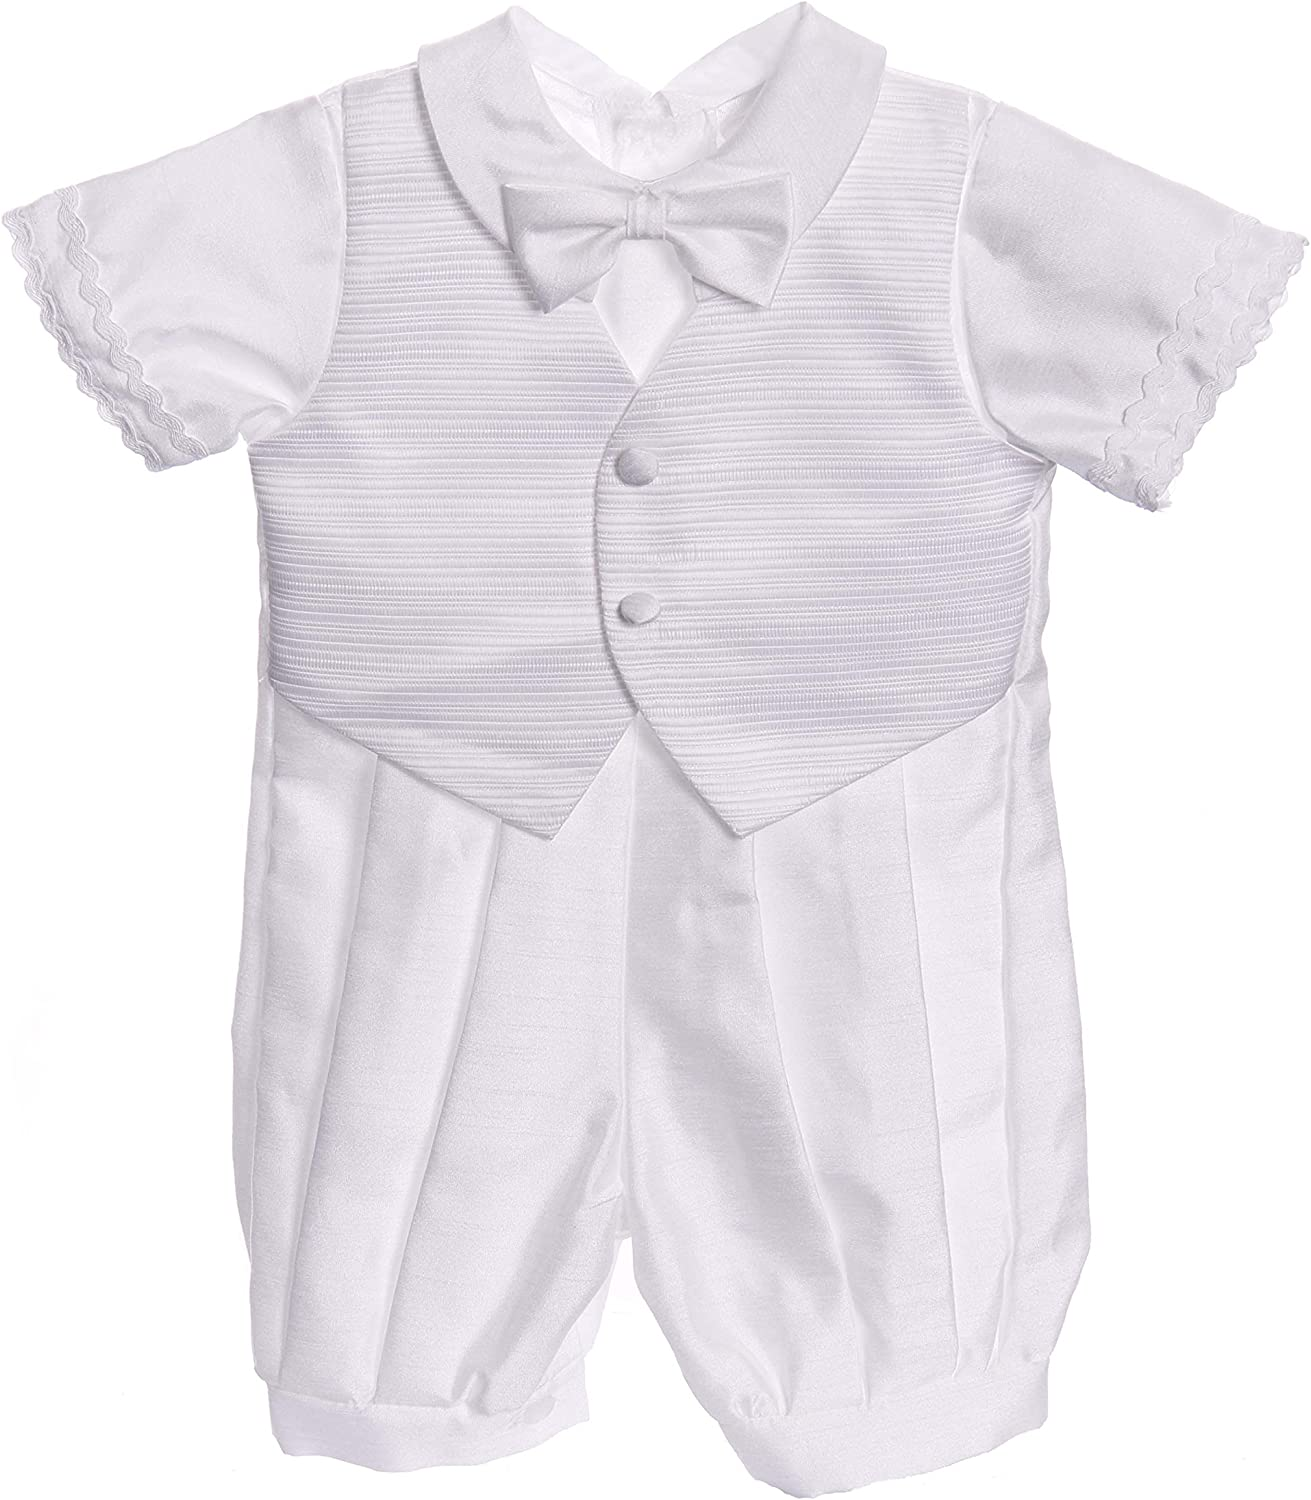 White Classic Christening 5pc Set Baby Boy Baptism Outfit 6-9M Small